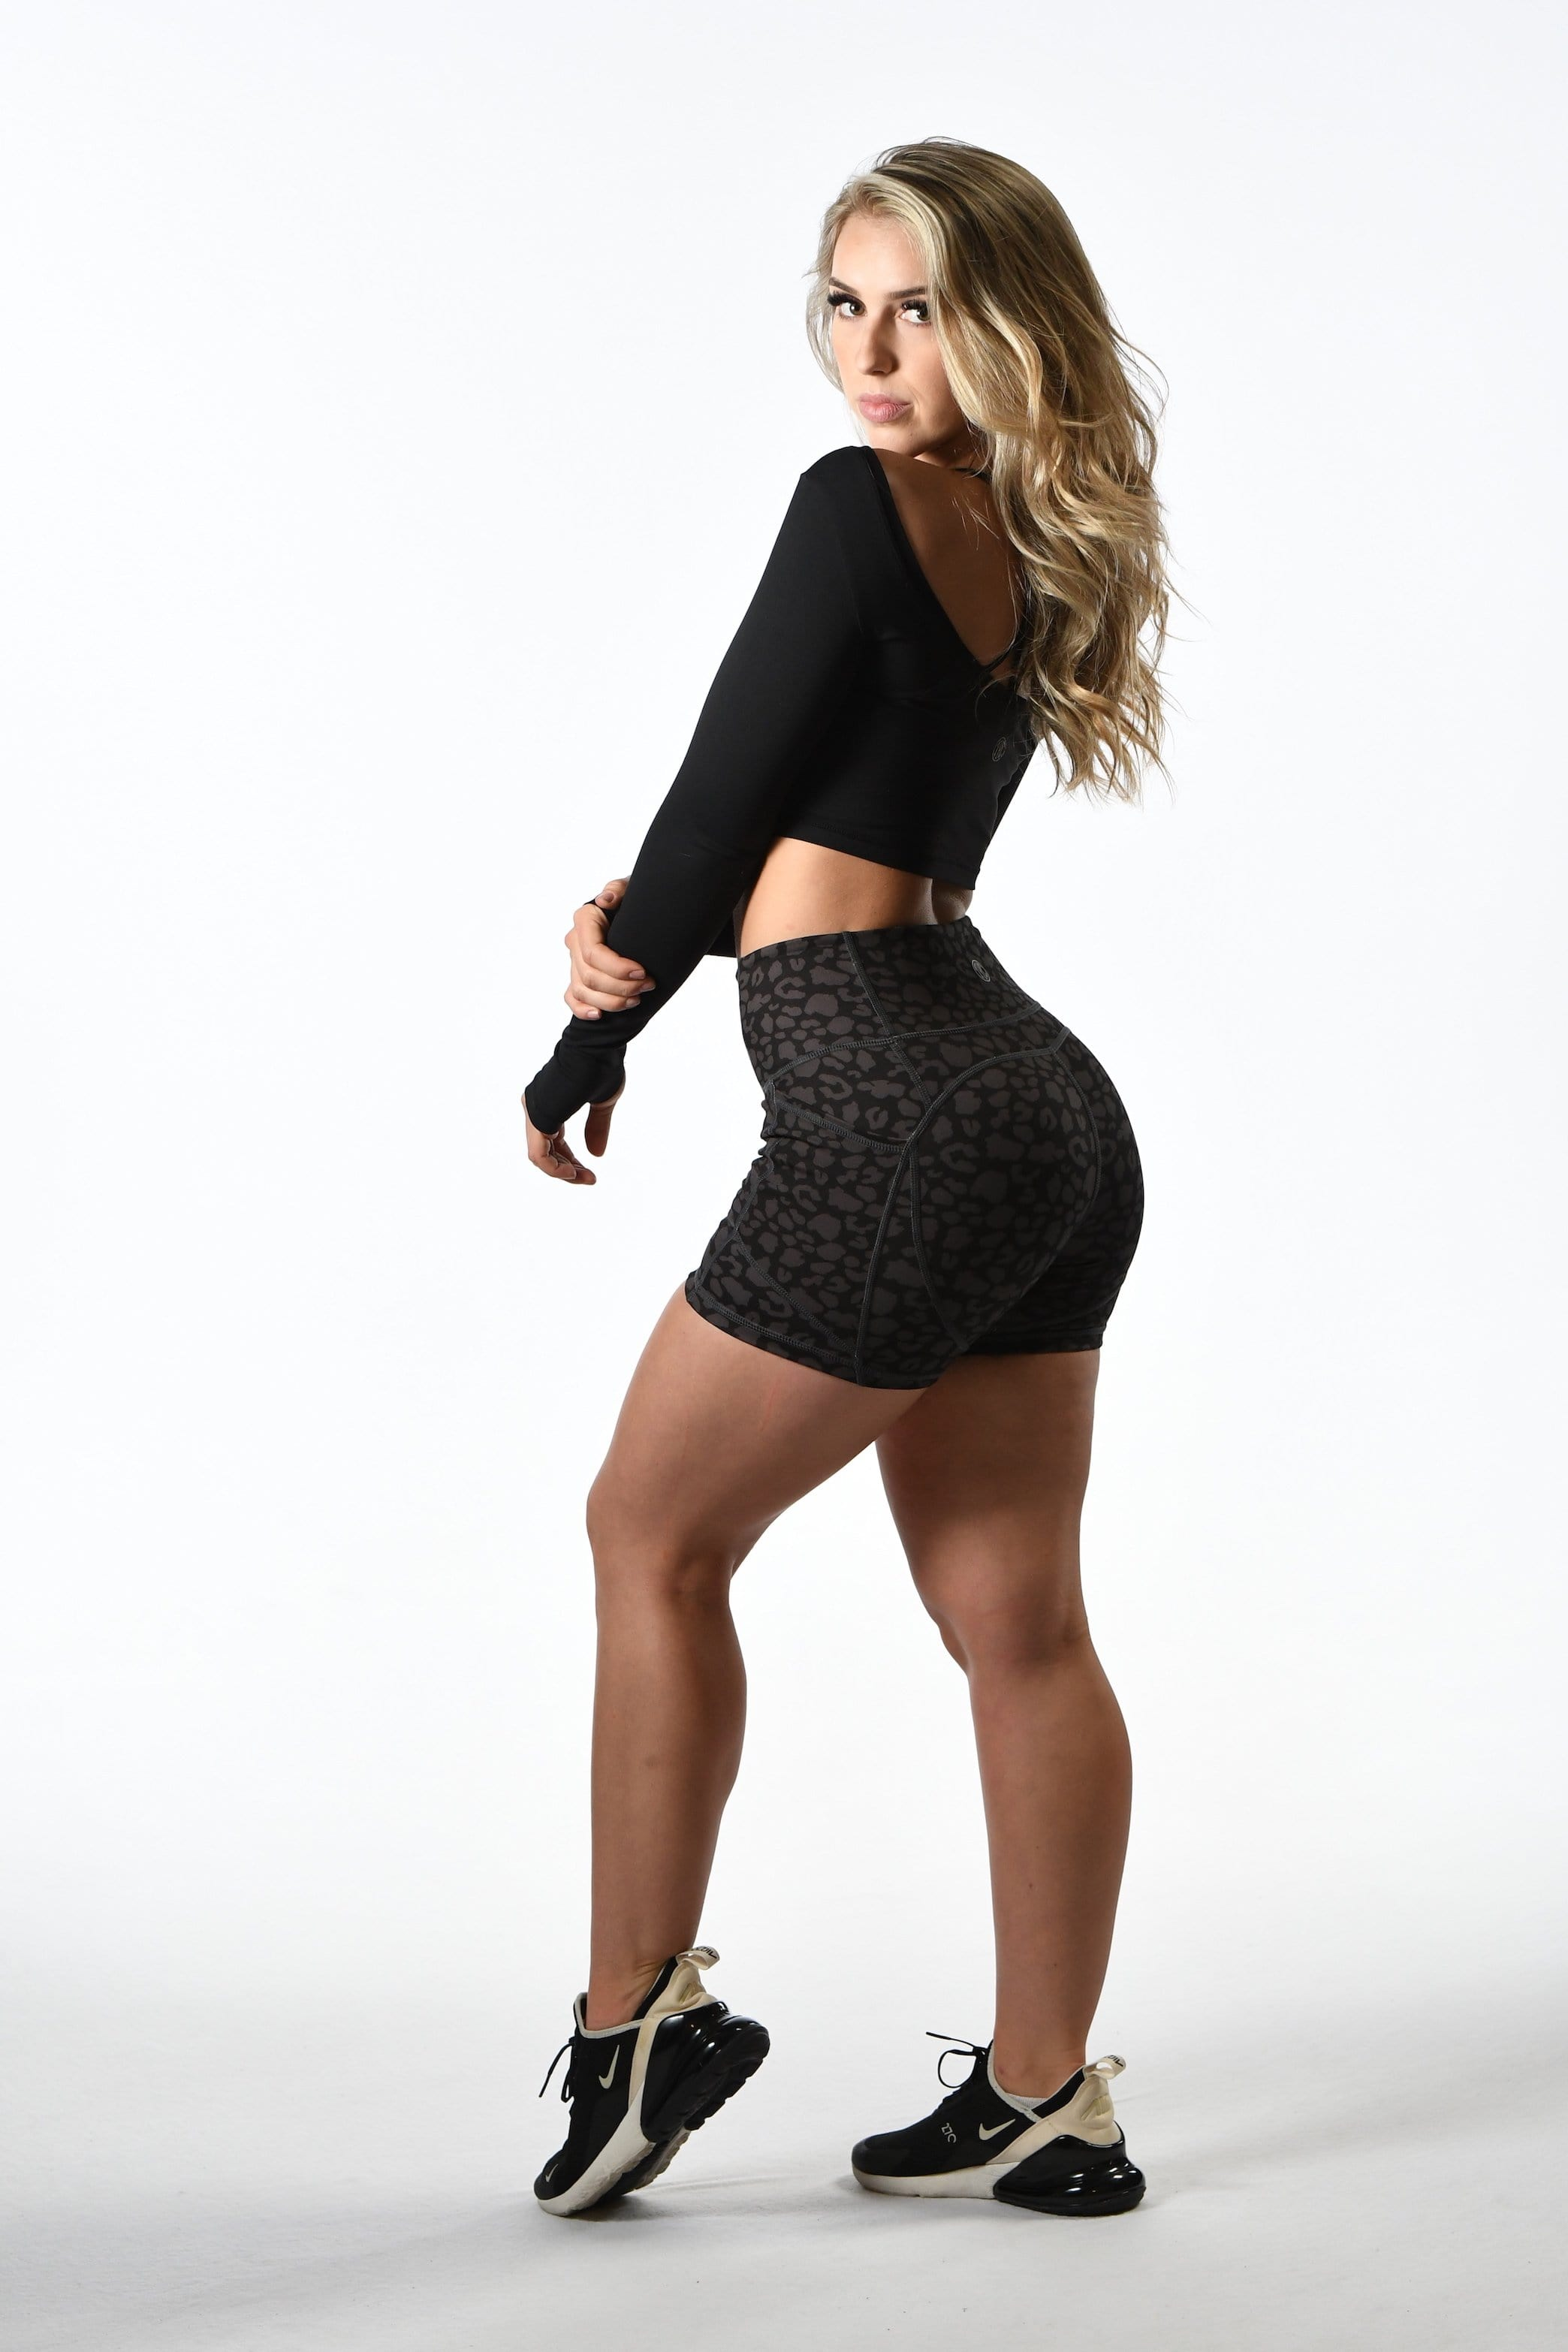 Effortless Heart Booty Shorts- Black Leopard